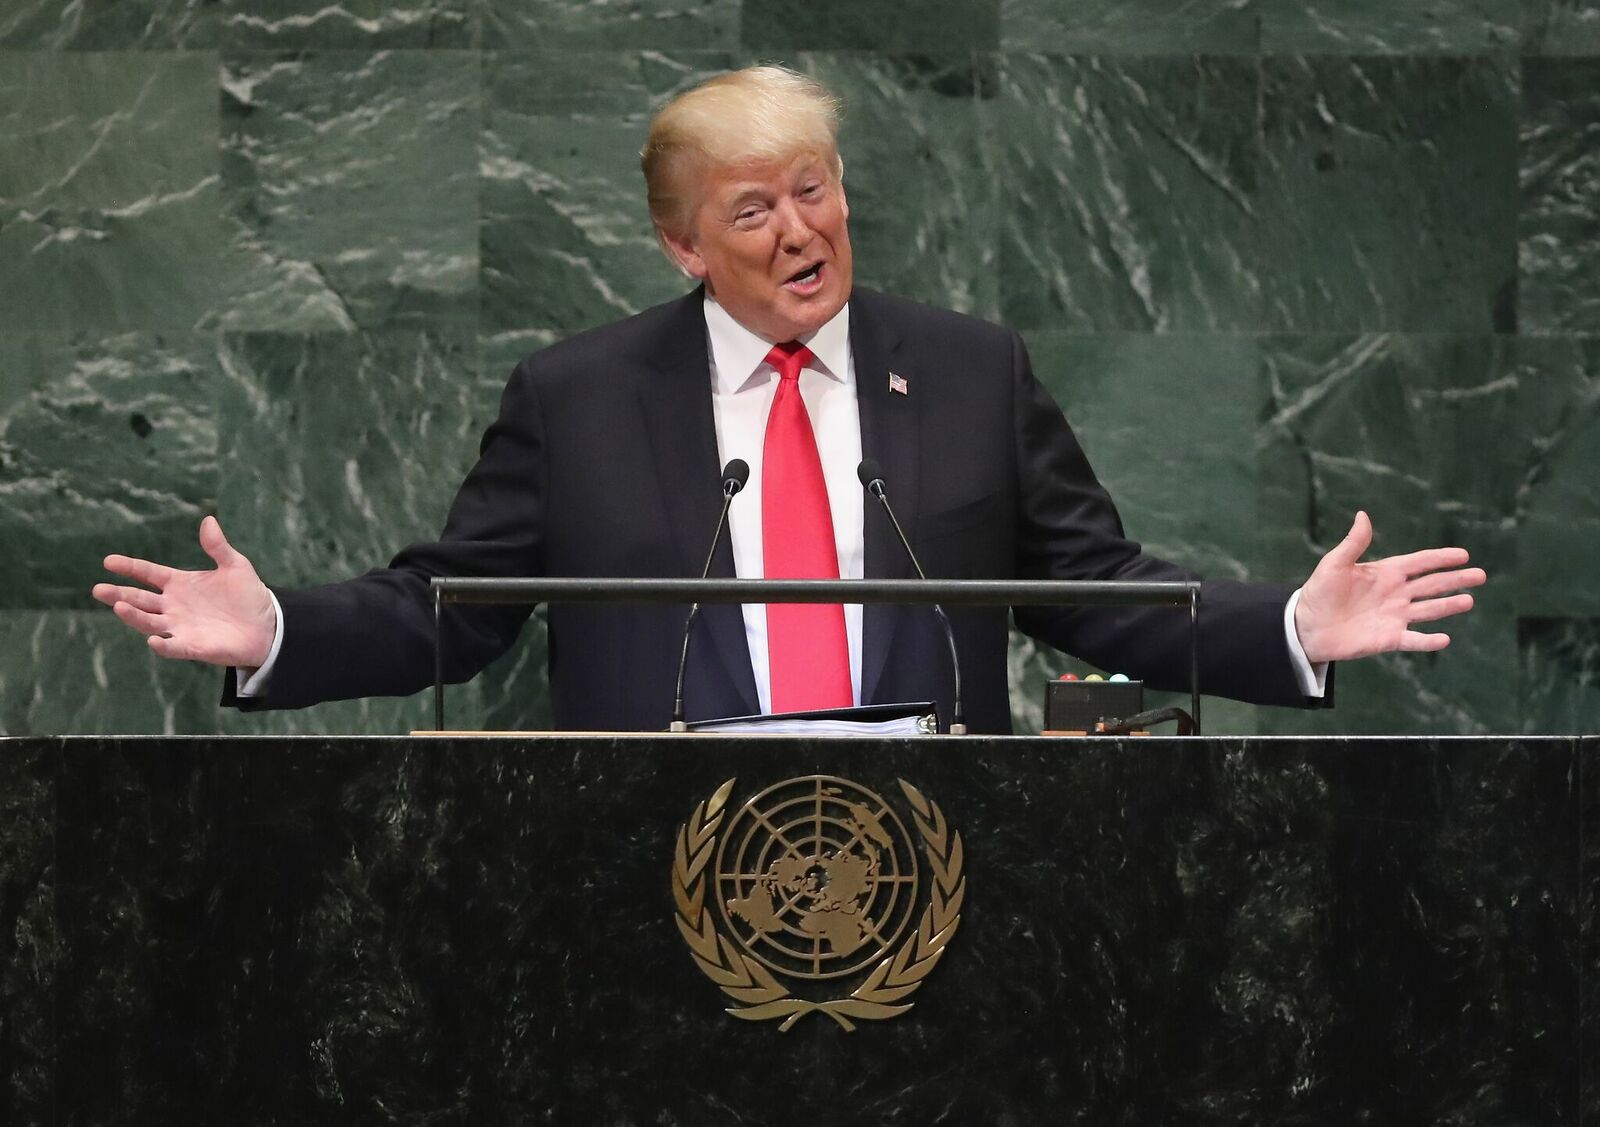 President Donald Trump at the 73rd session of the United Nations General Assembly on September 25, 2018, in New York City | Photo: John Moore/Getty Images